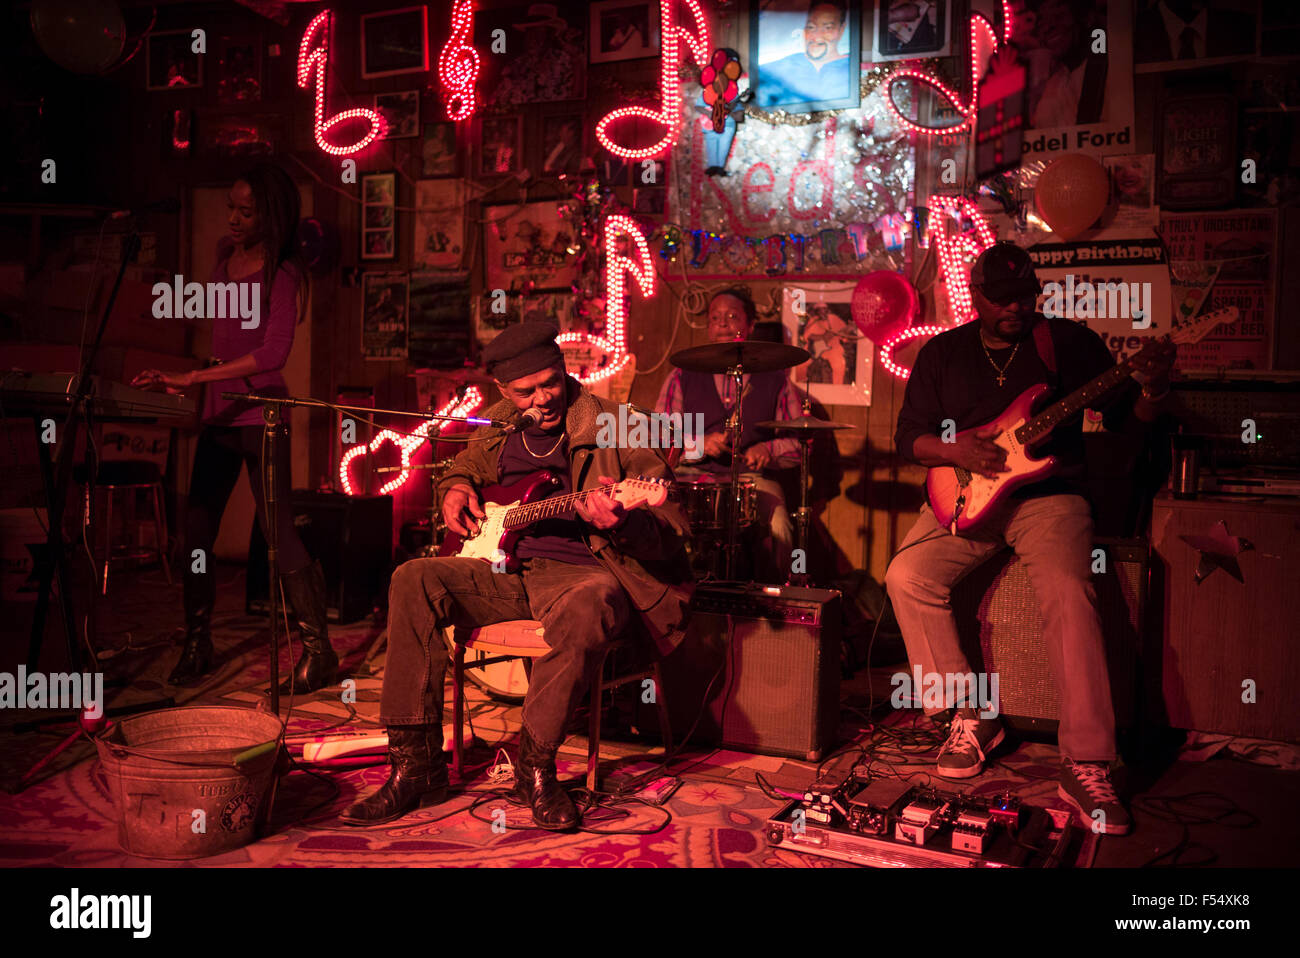 Blues band, guitarist, drums, vocals in live performance on stage at Red's Lounge Blues Club in Clarksdale, Mississippi, Stock Photo